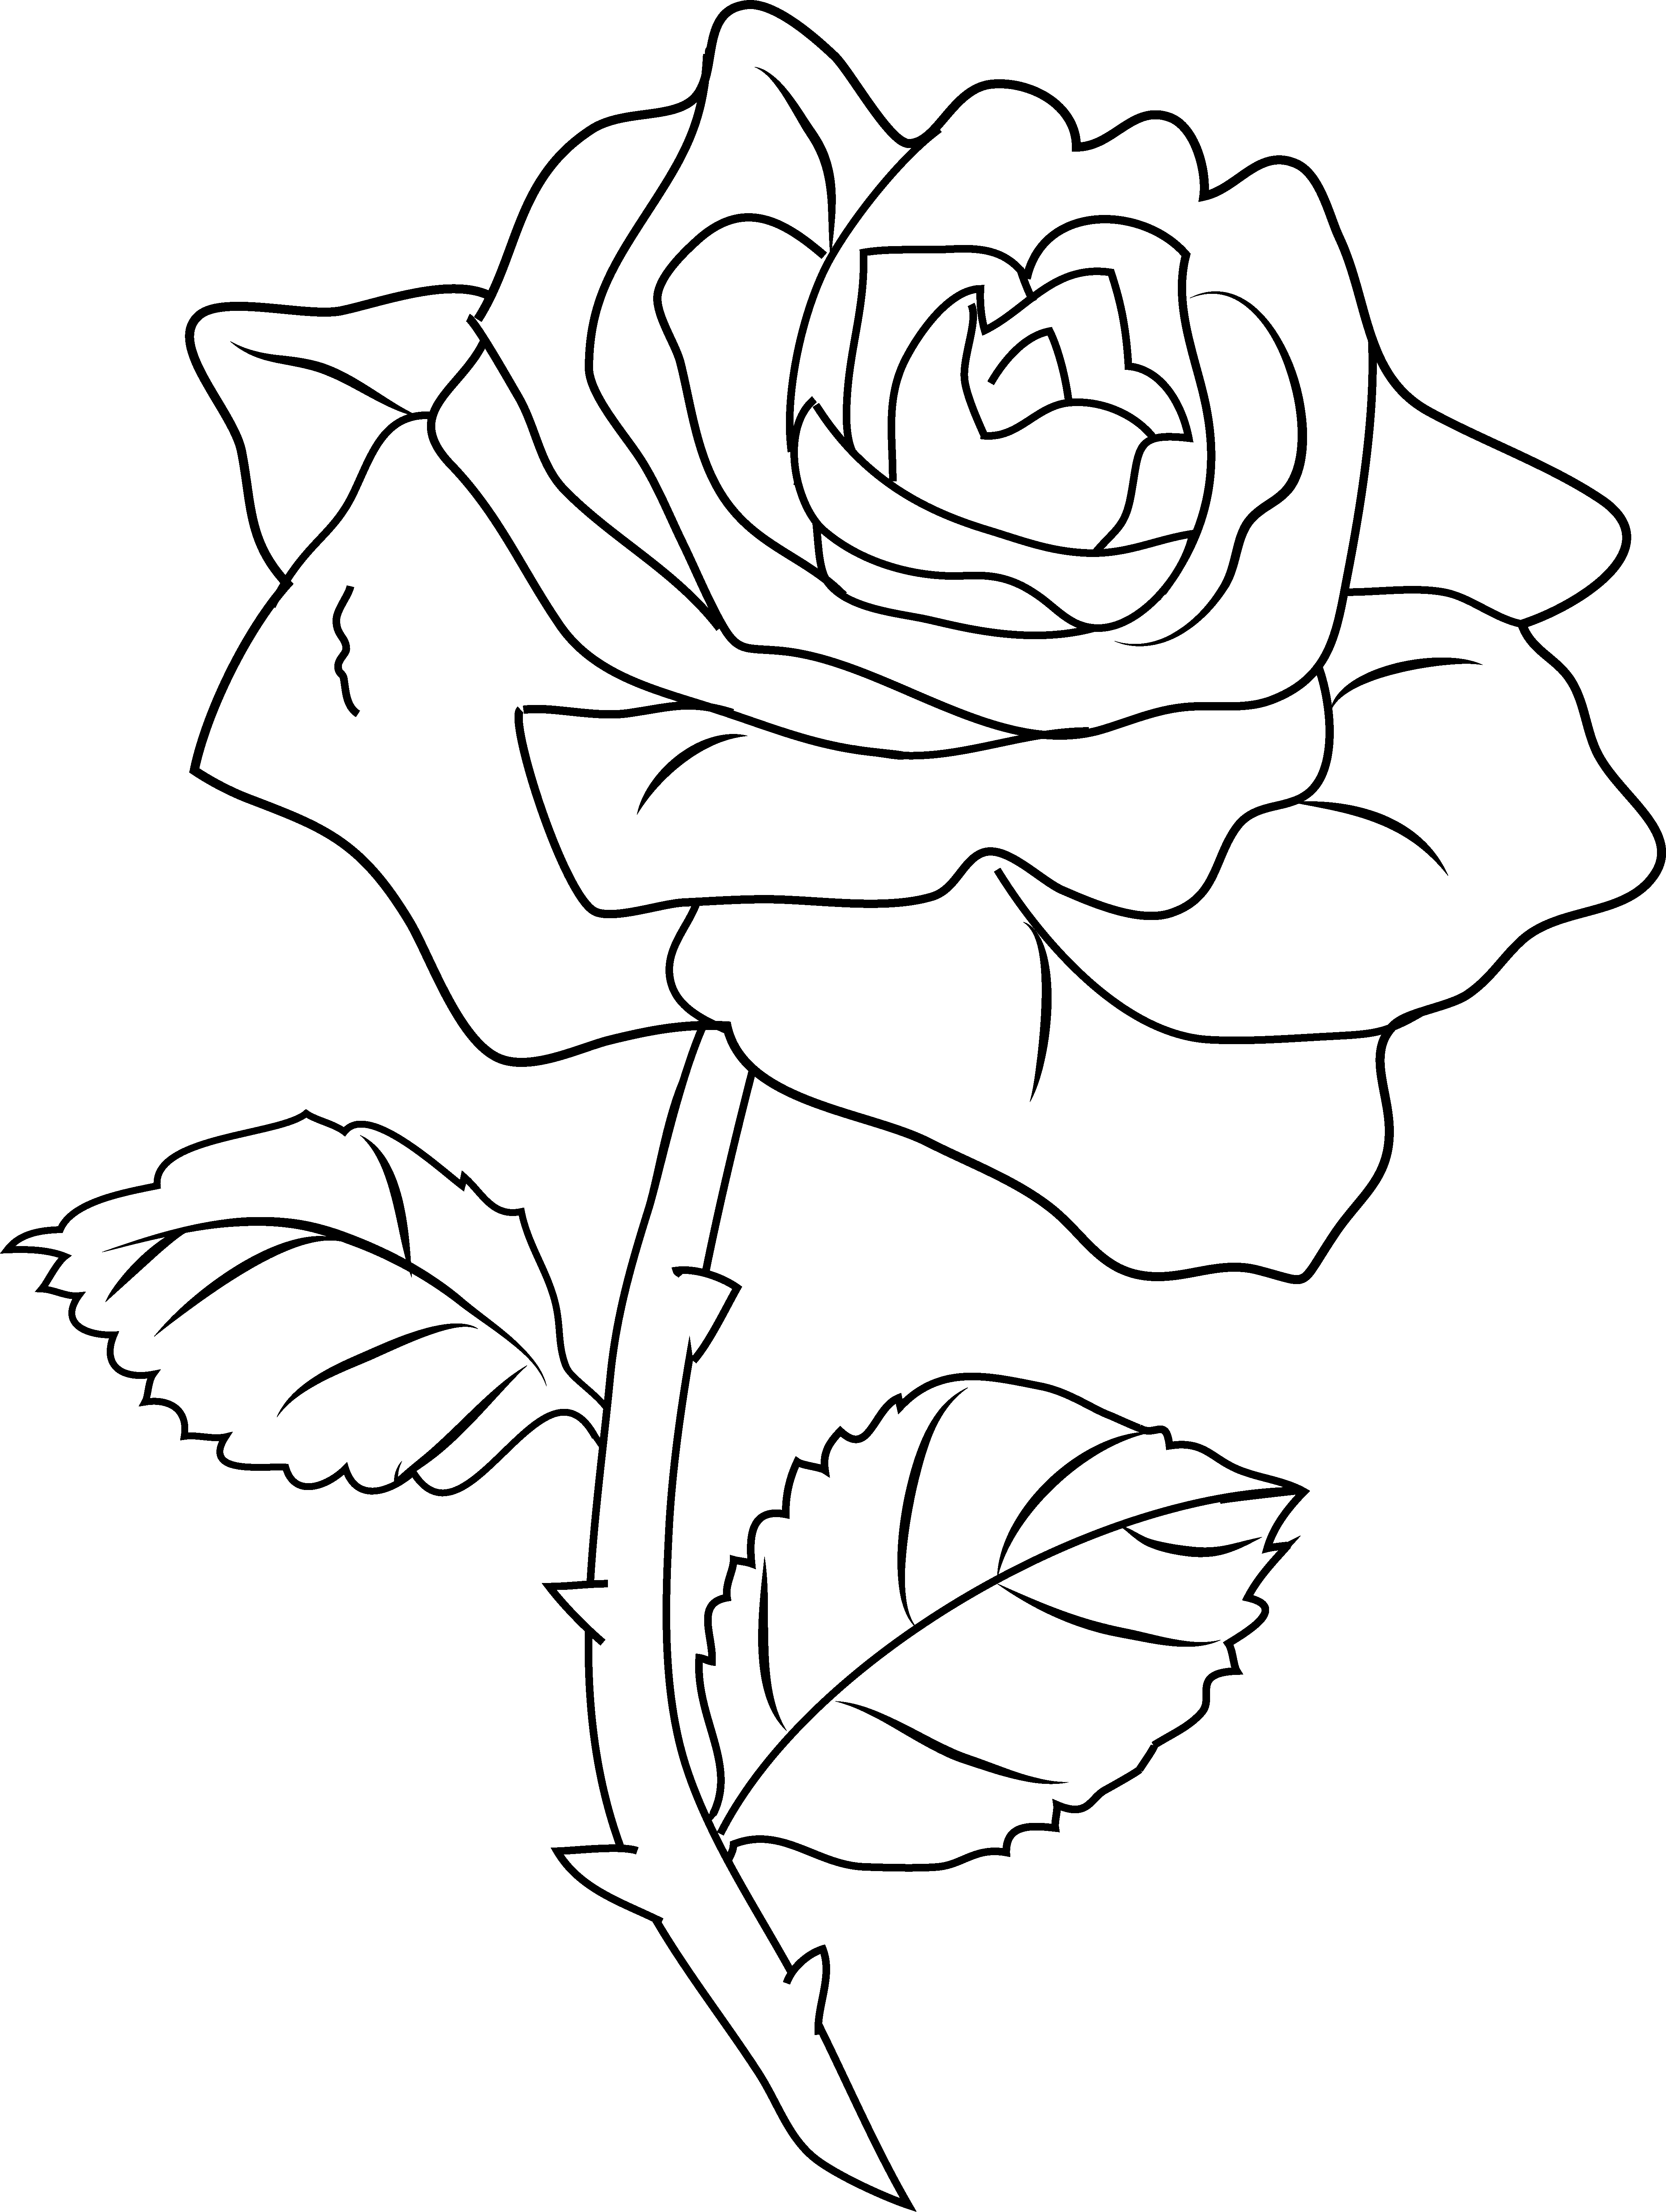 rose to color roses coloring pages to download and print for free rose to color